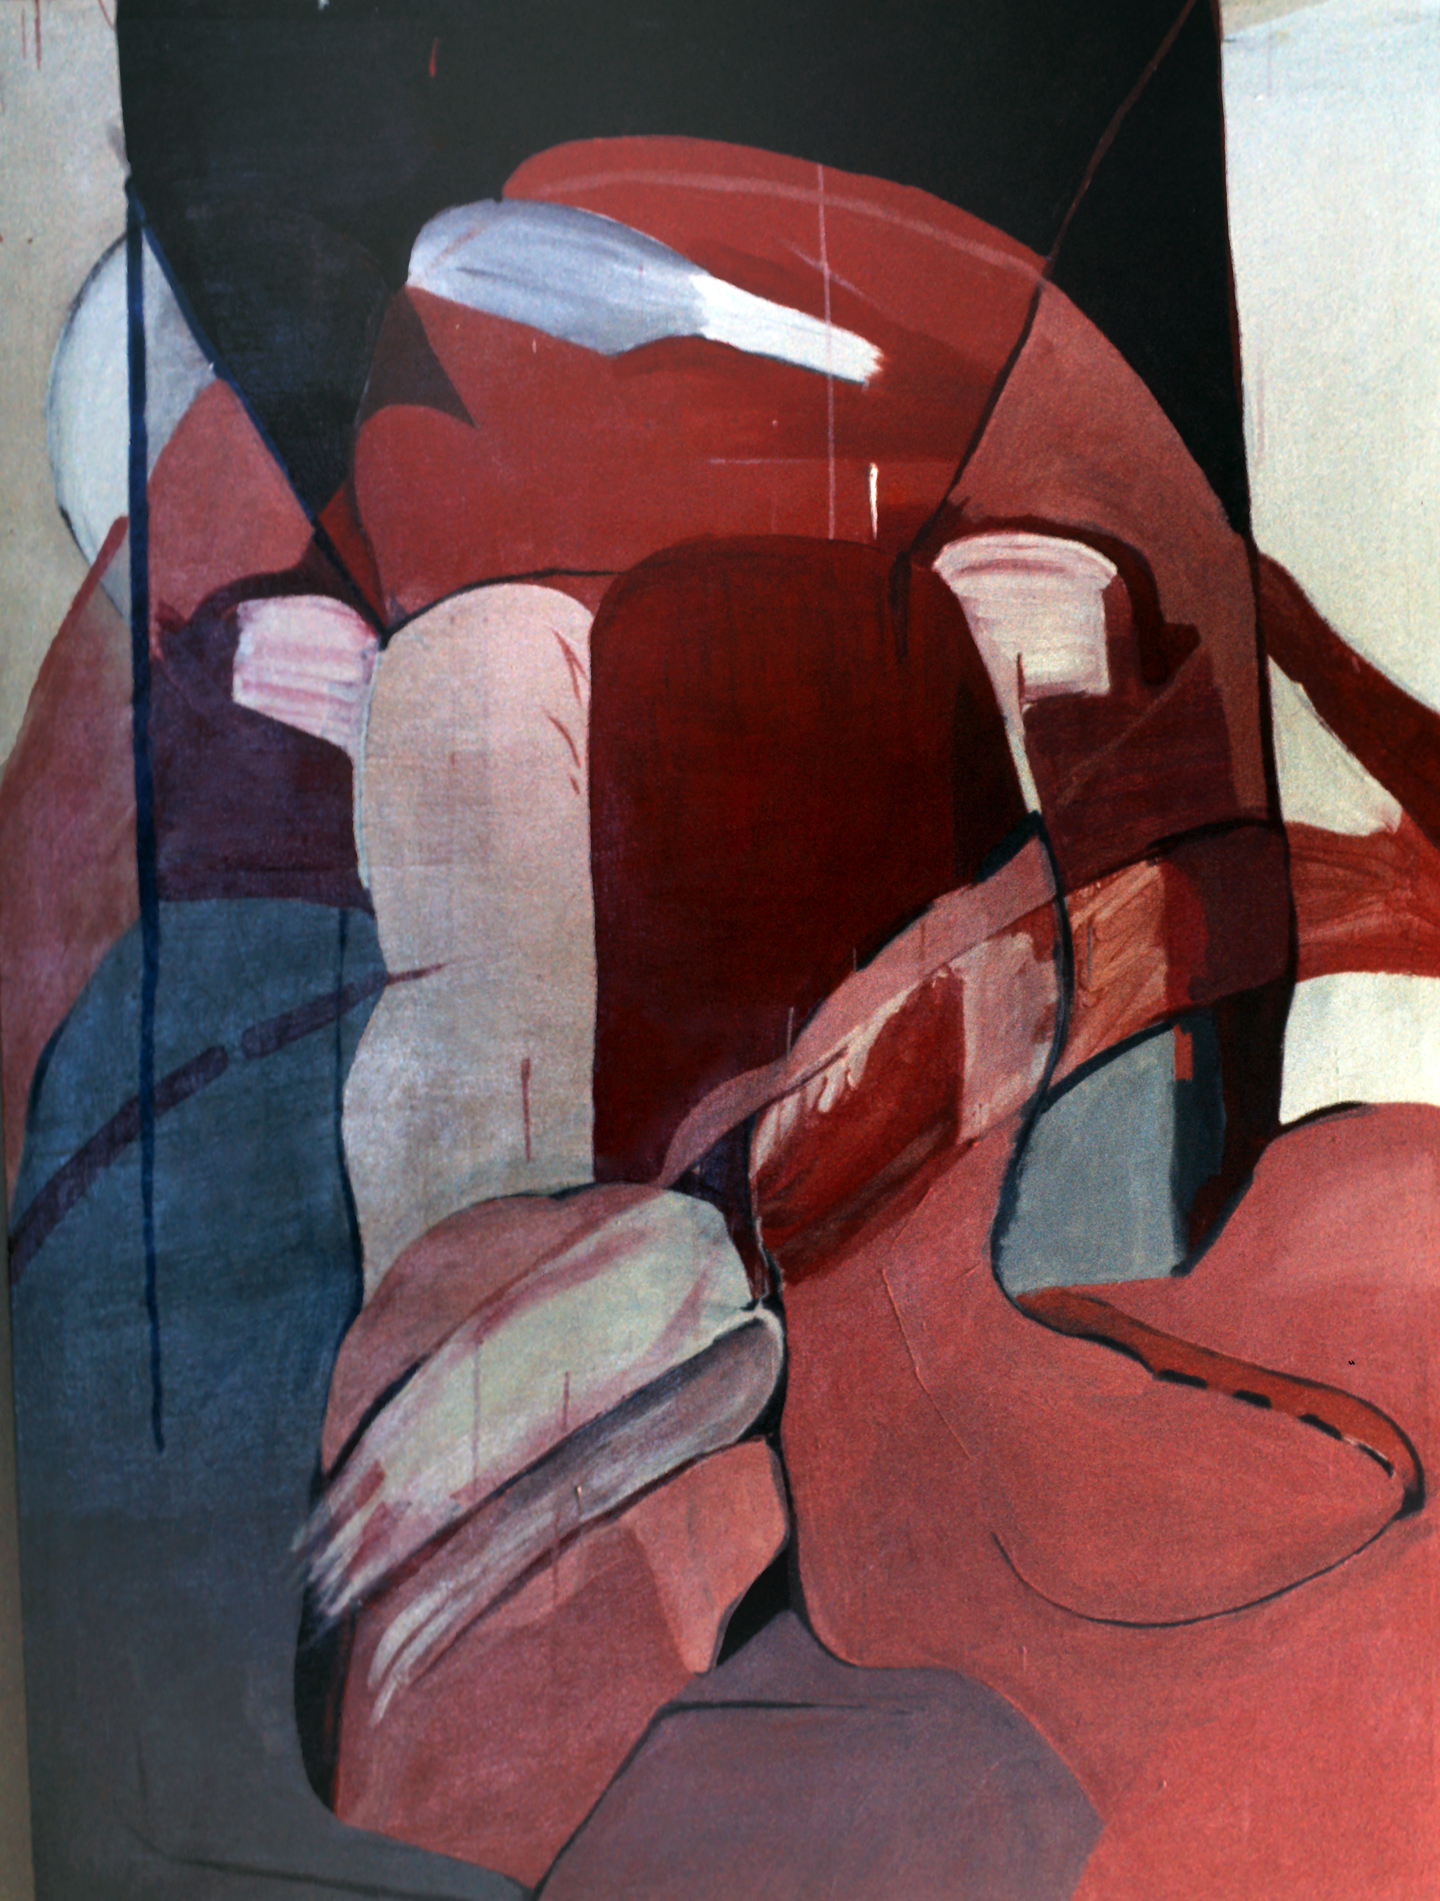 Untitled, 1969., oil on canvas, 60 x 70 in